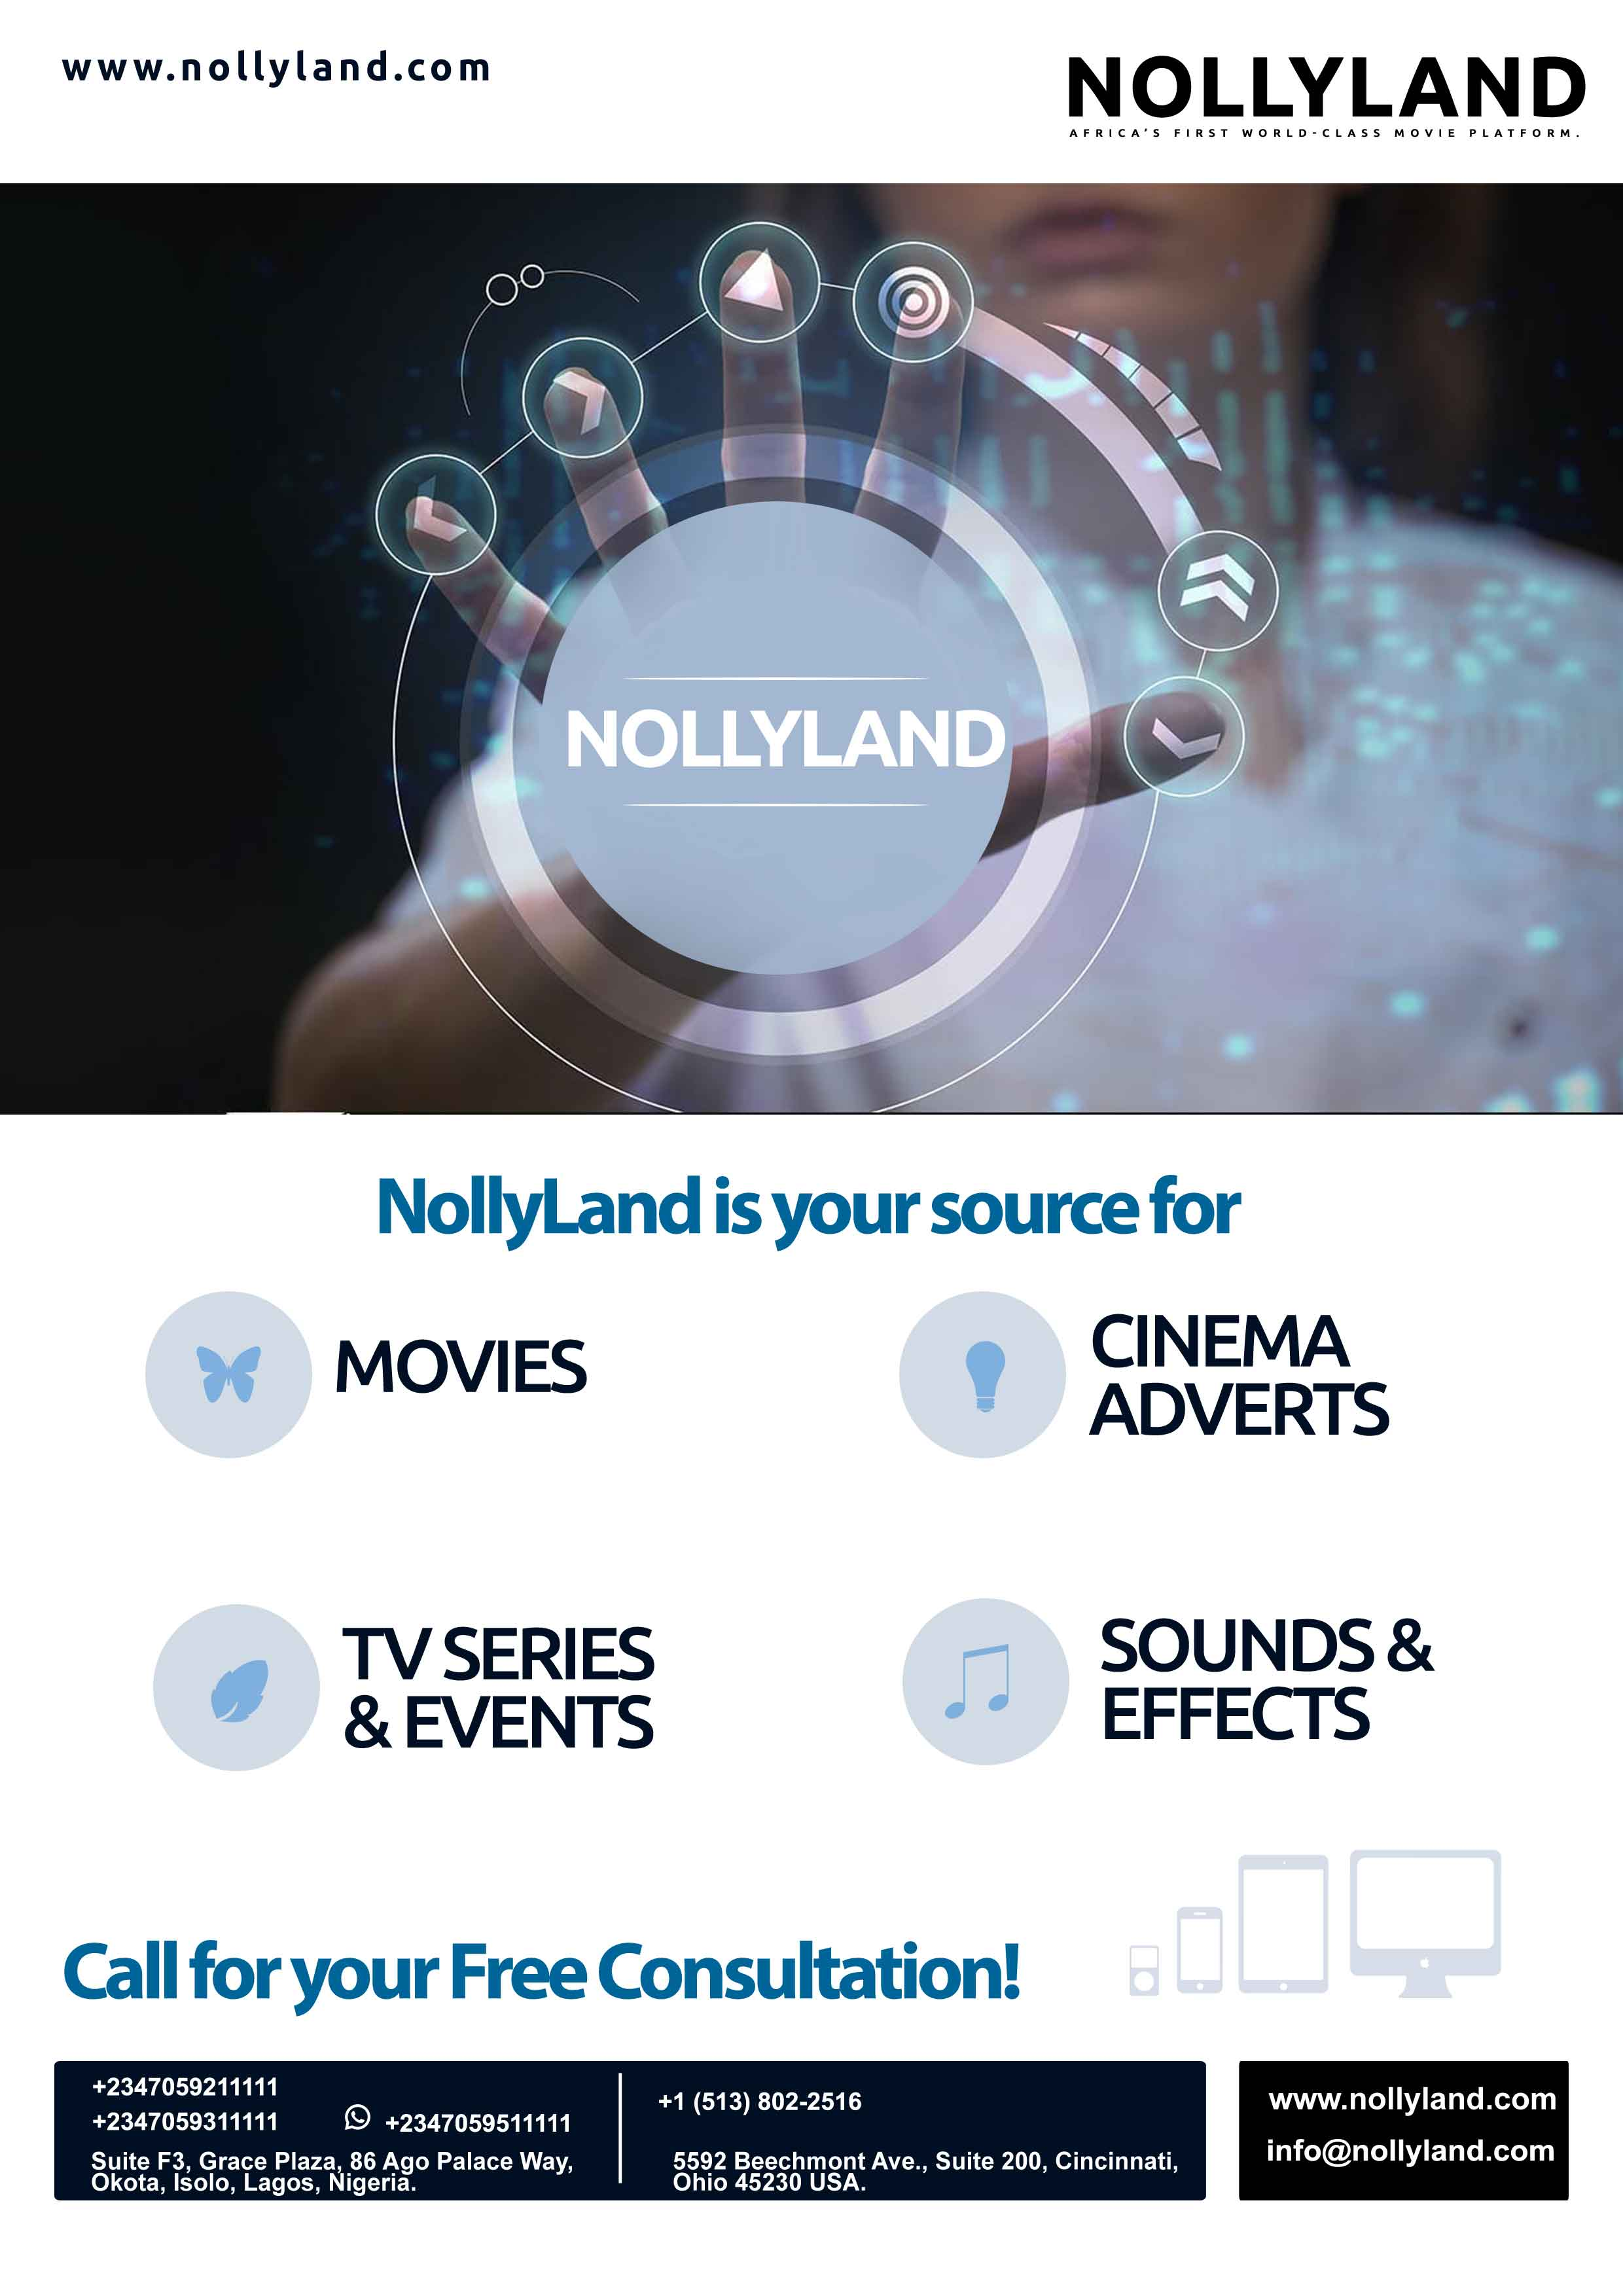 NollyLand Cinema Adverts